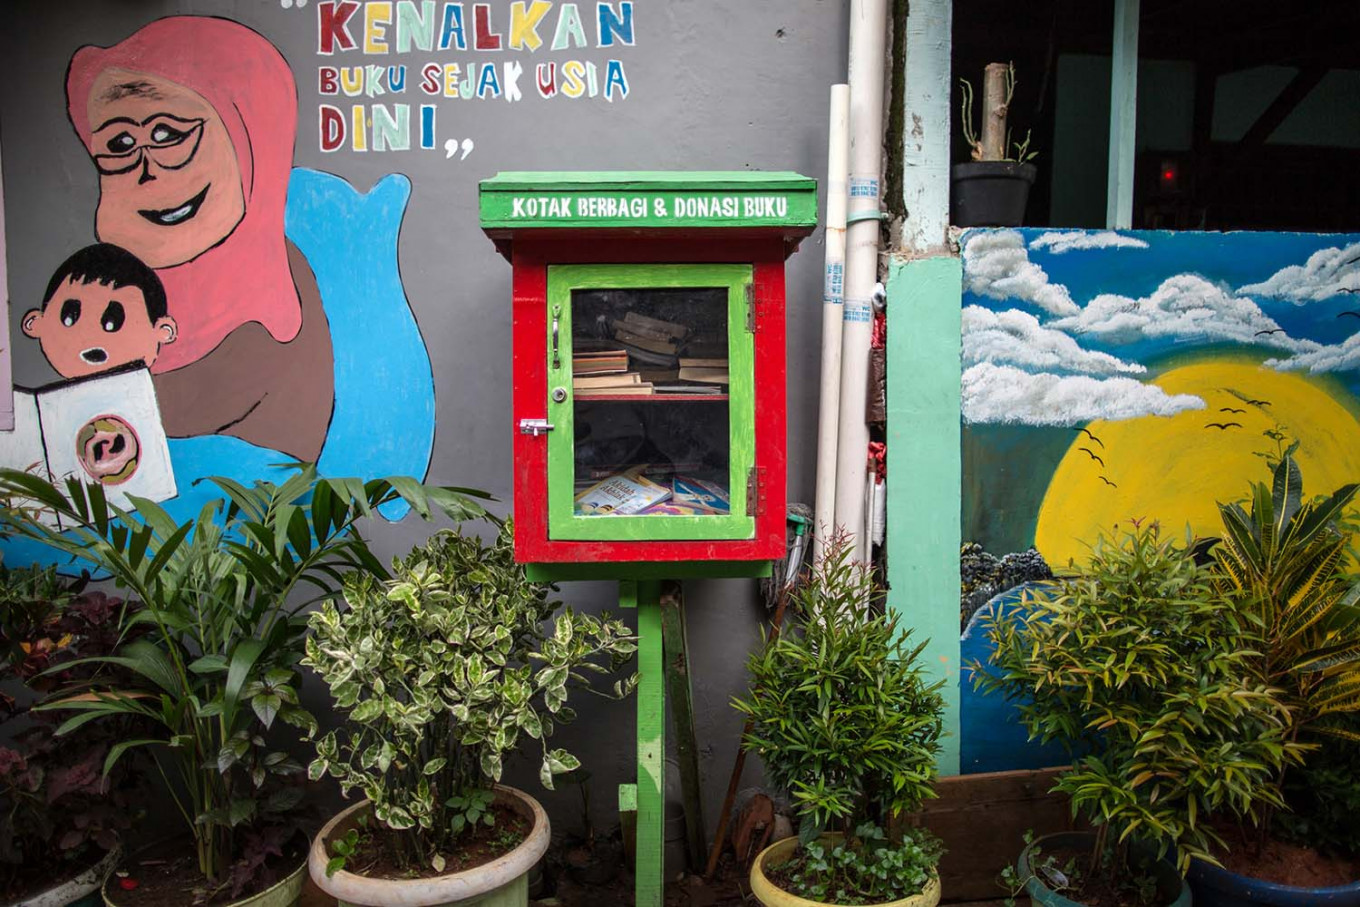 A colorfully painted book-sharing box offers free reading material along an alley in Jatipulo subdistrict, West Jakarta. JP/Afriadi Hikmal